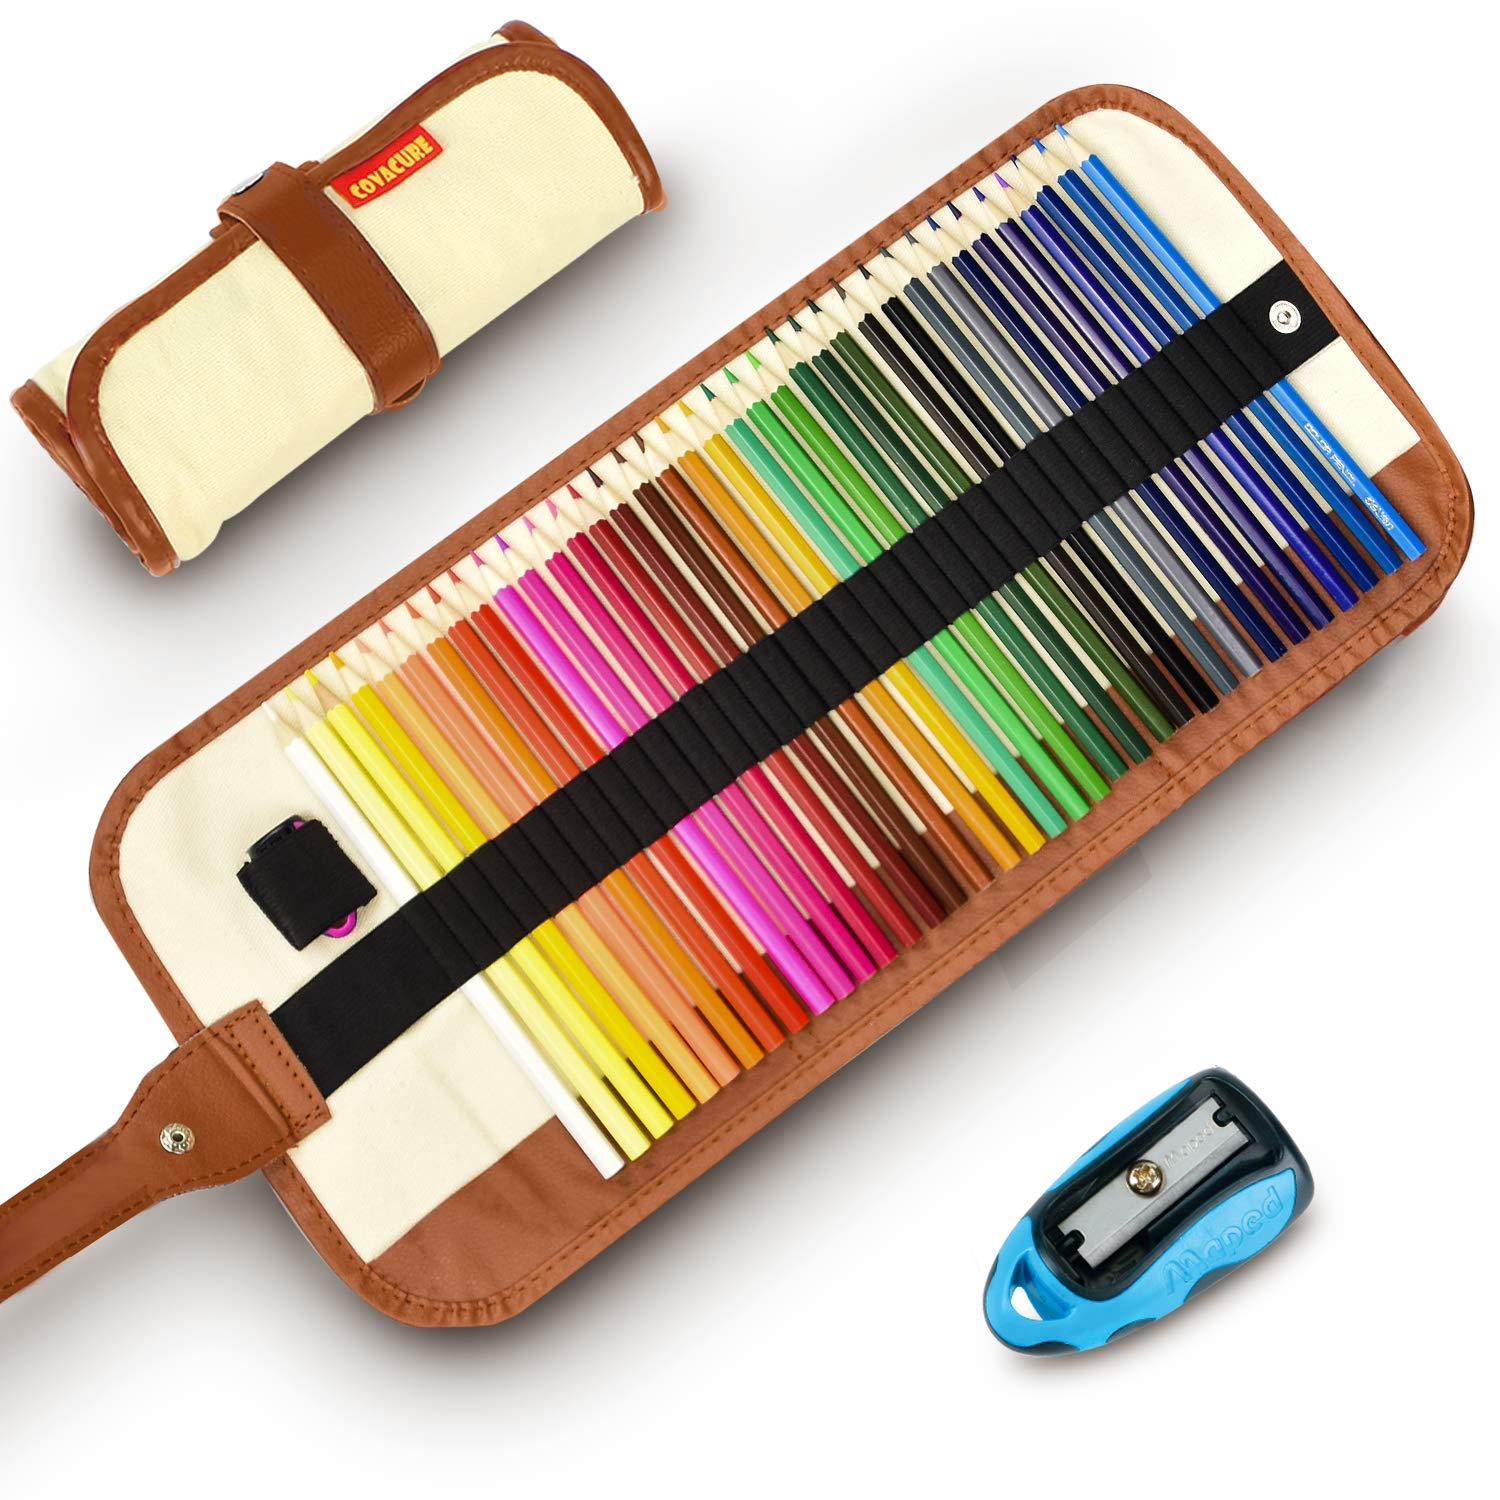 Colored Pencils Set for Adult and Kids - COVACURE Premier Color Pencil Set With 36 Colouring Pencils Sharpener and Canvas Pencil Bag for Kids and Adult Coloring Book. Ideal for Christmas Gifts by Covacure